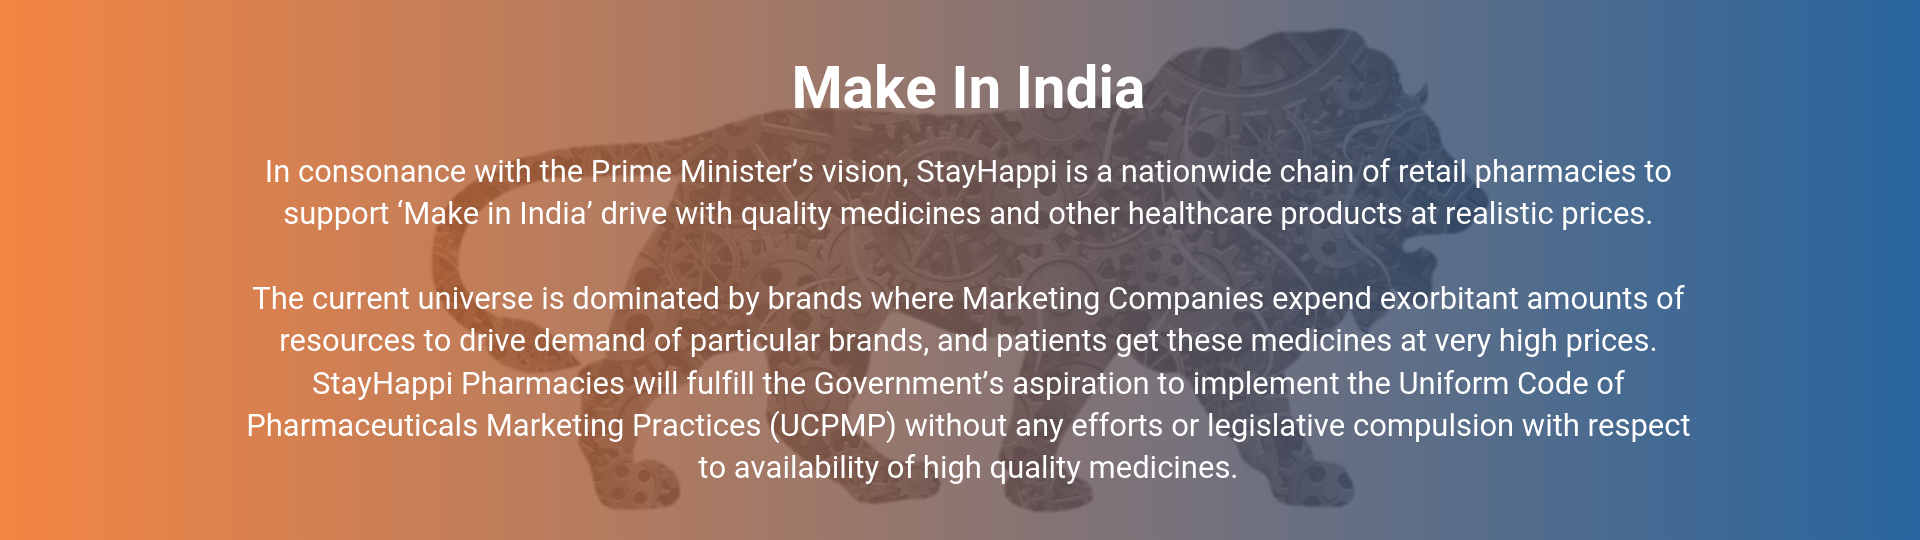 StayHappi Pharmacy - Make in India Support